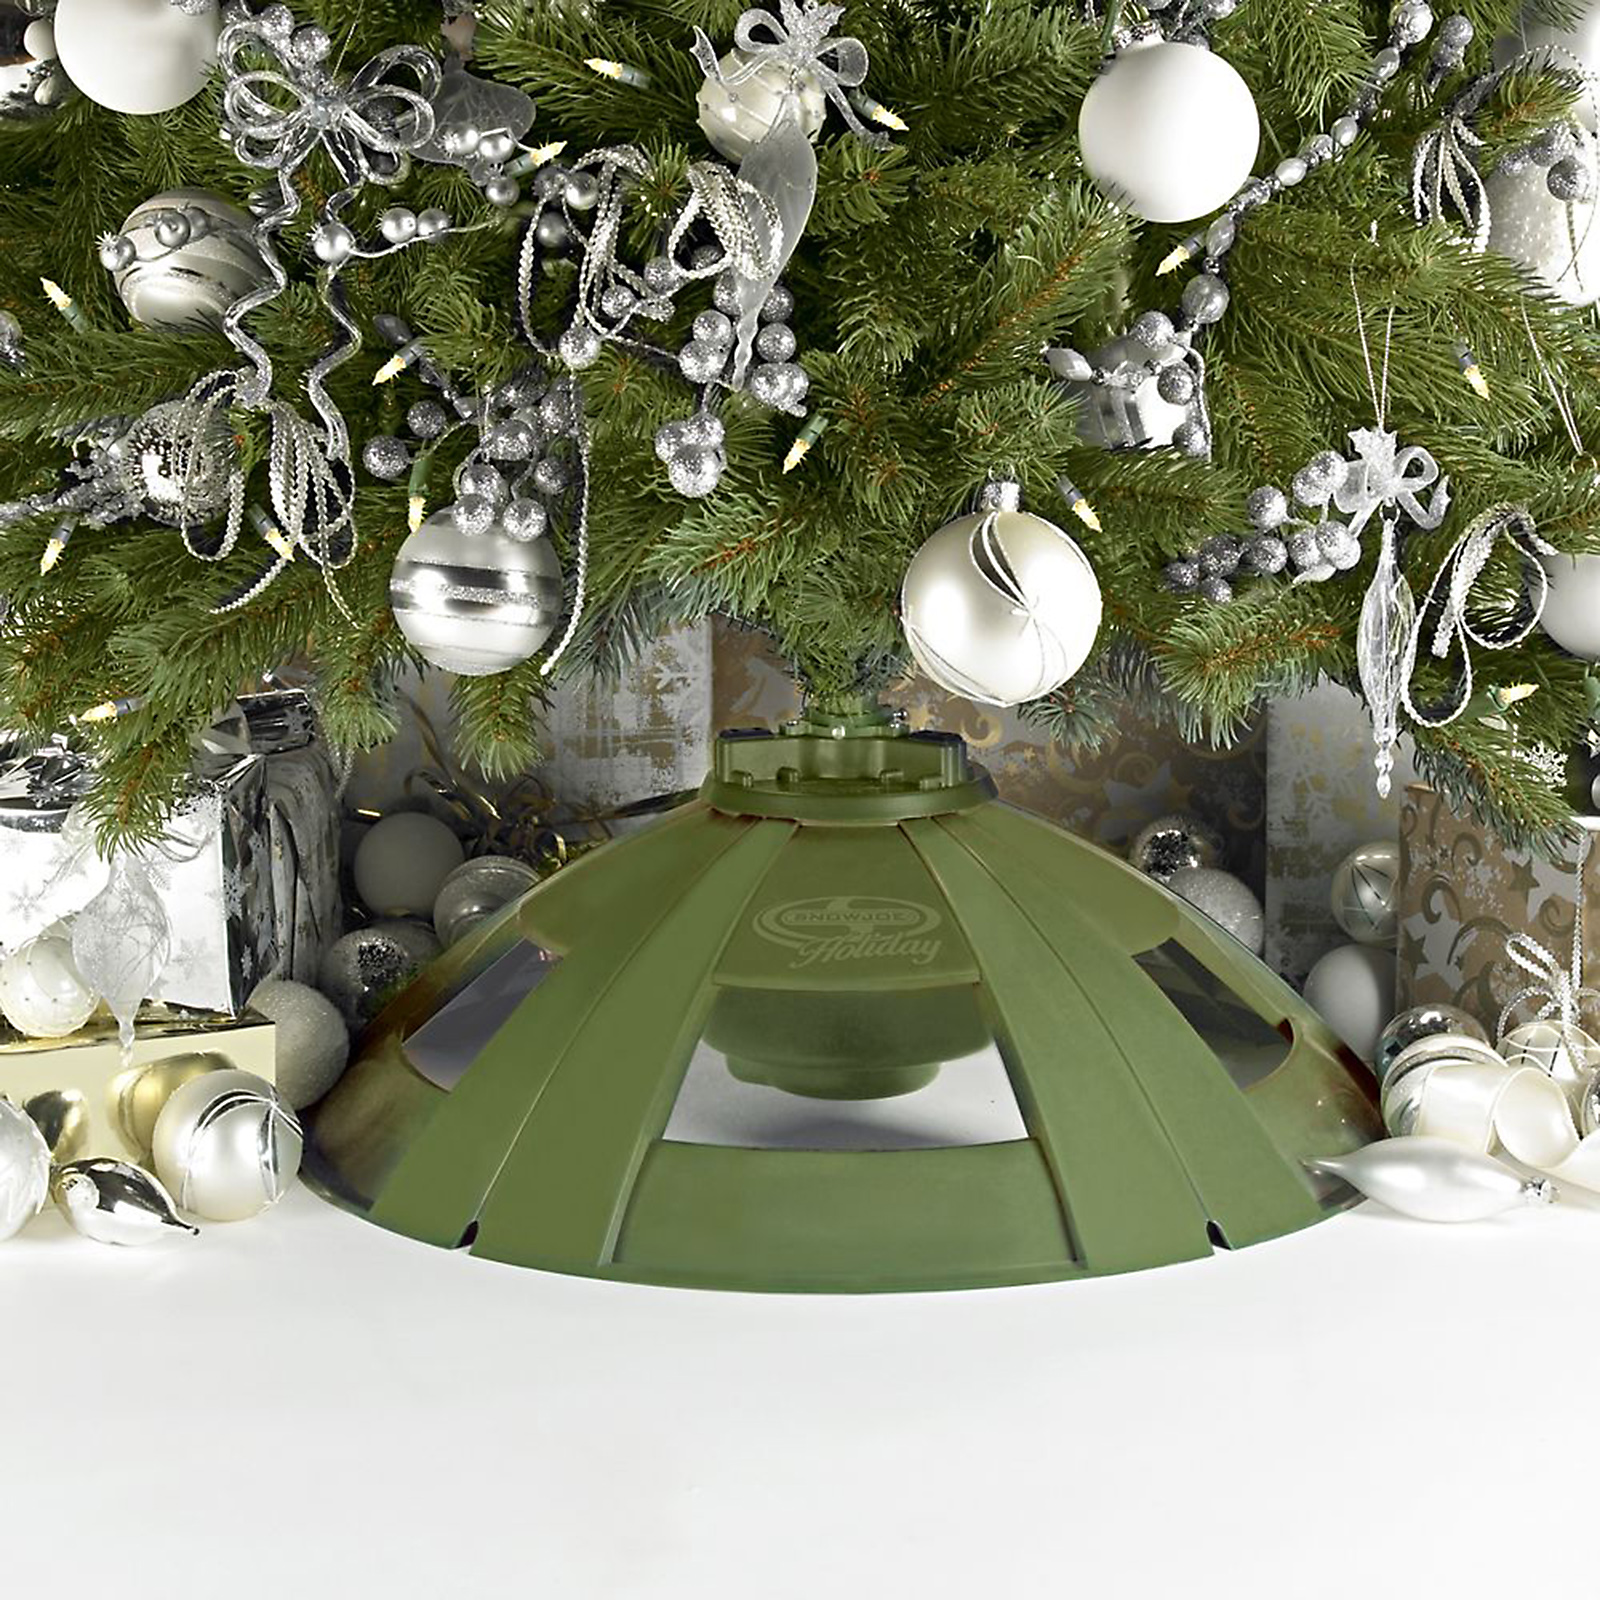 Snow Joe Holiday Rotating Tree Stand For Artificial Trees